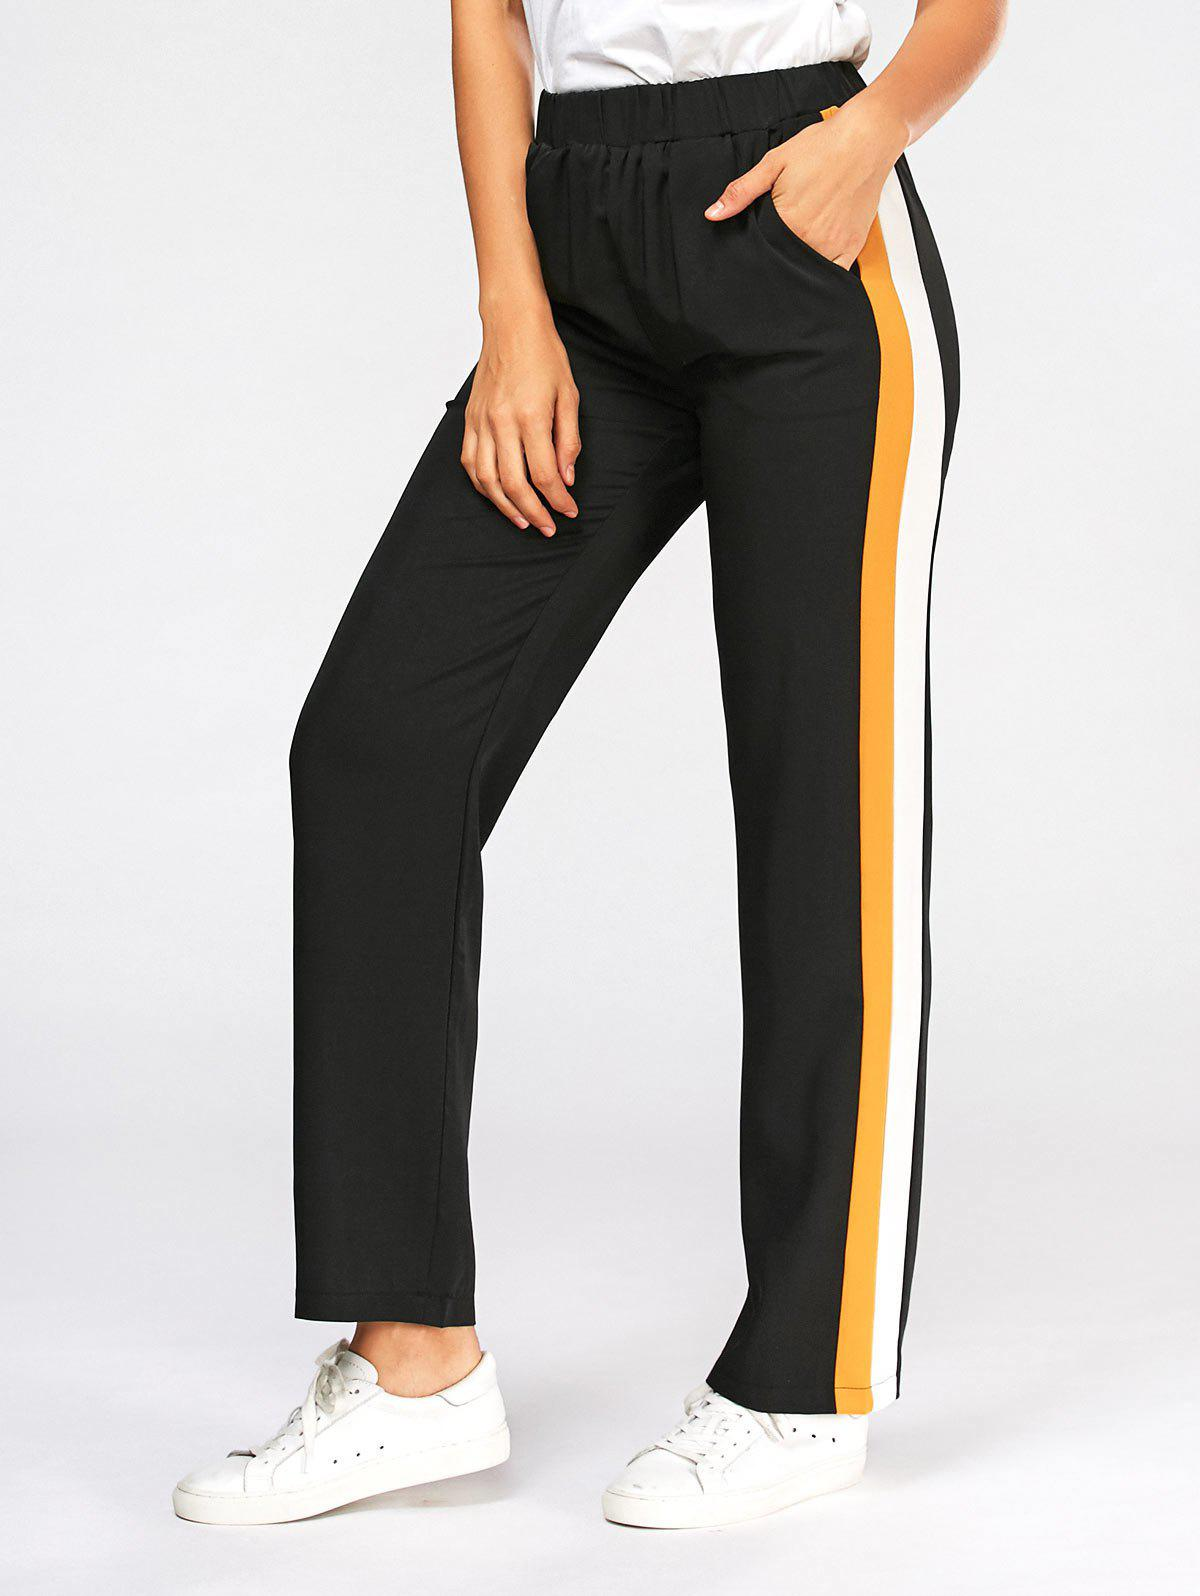 Casual Three Tones Elastic High Wasit Pants - BLACK XL